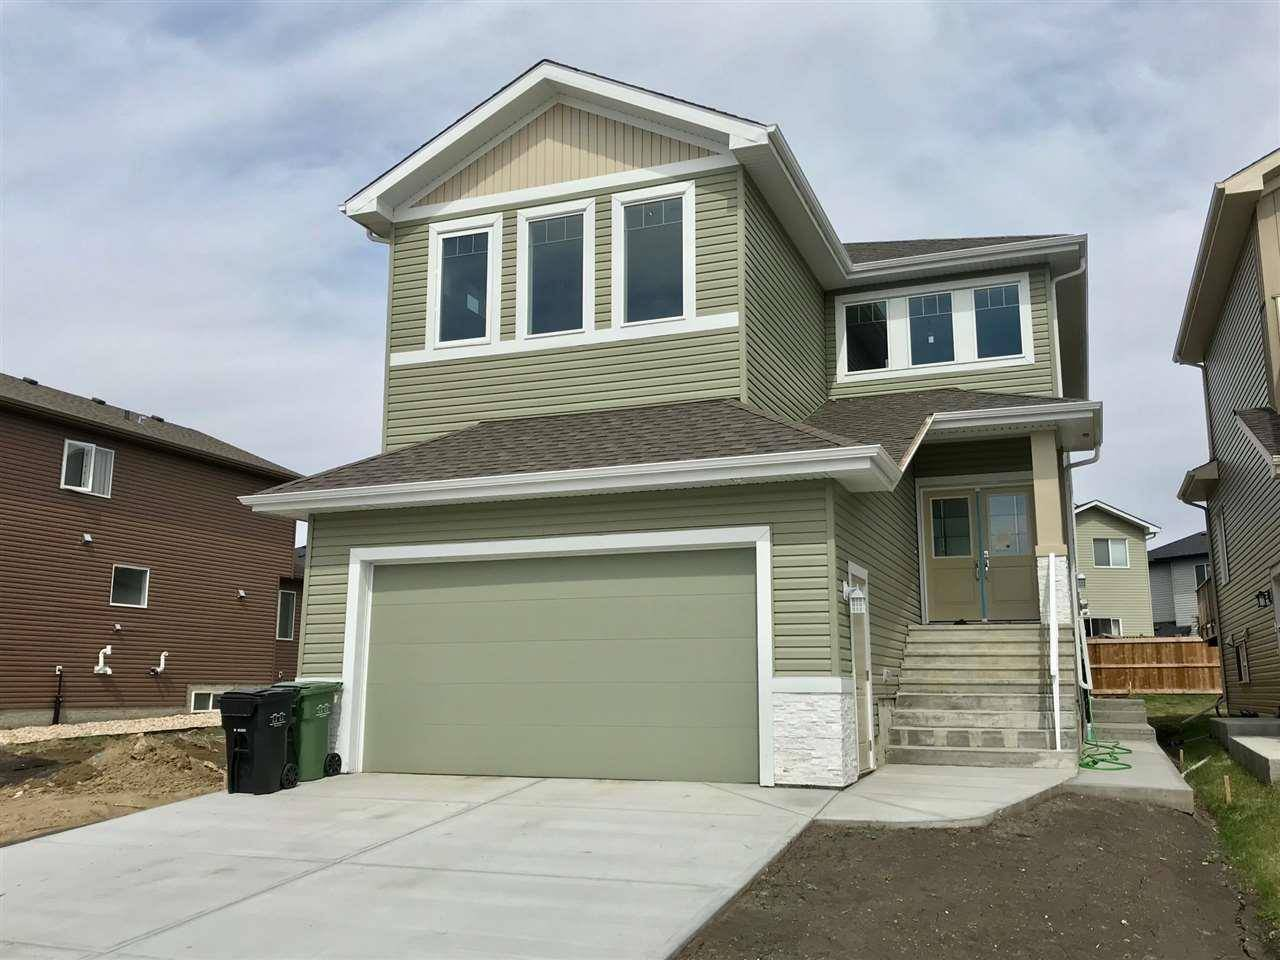 House for sale at 450 Reynalds Wd Leduc Alberta - MLS: E4191487